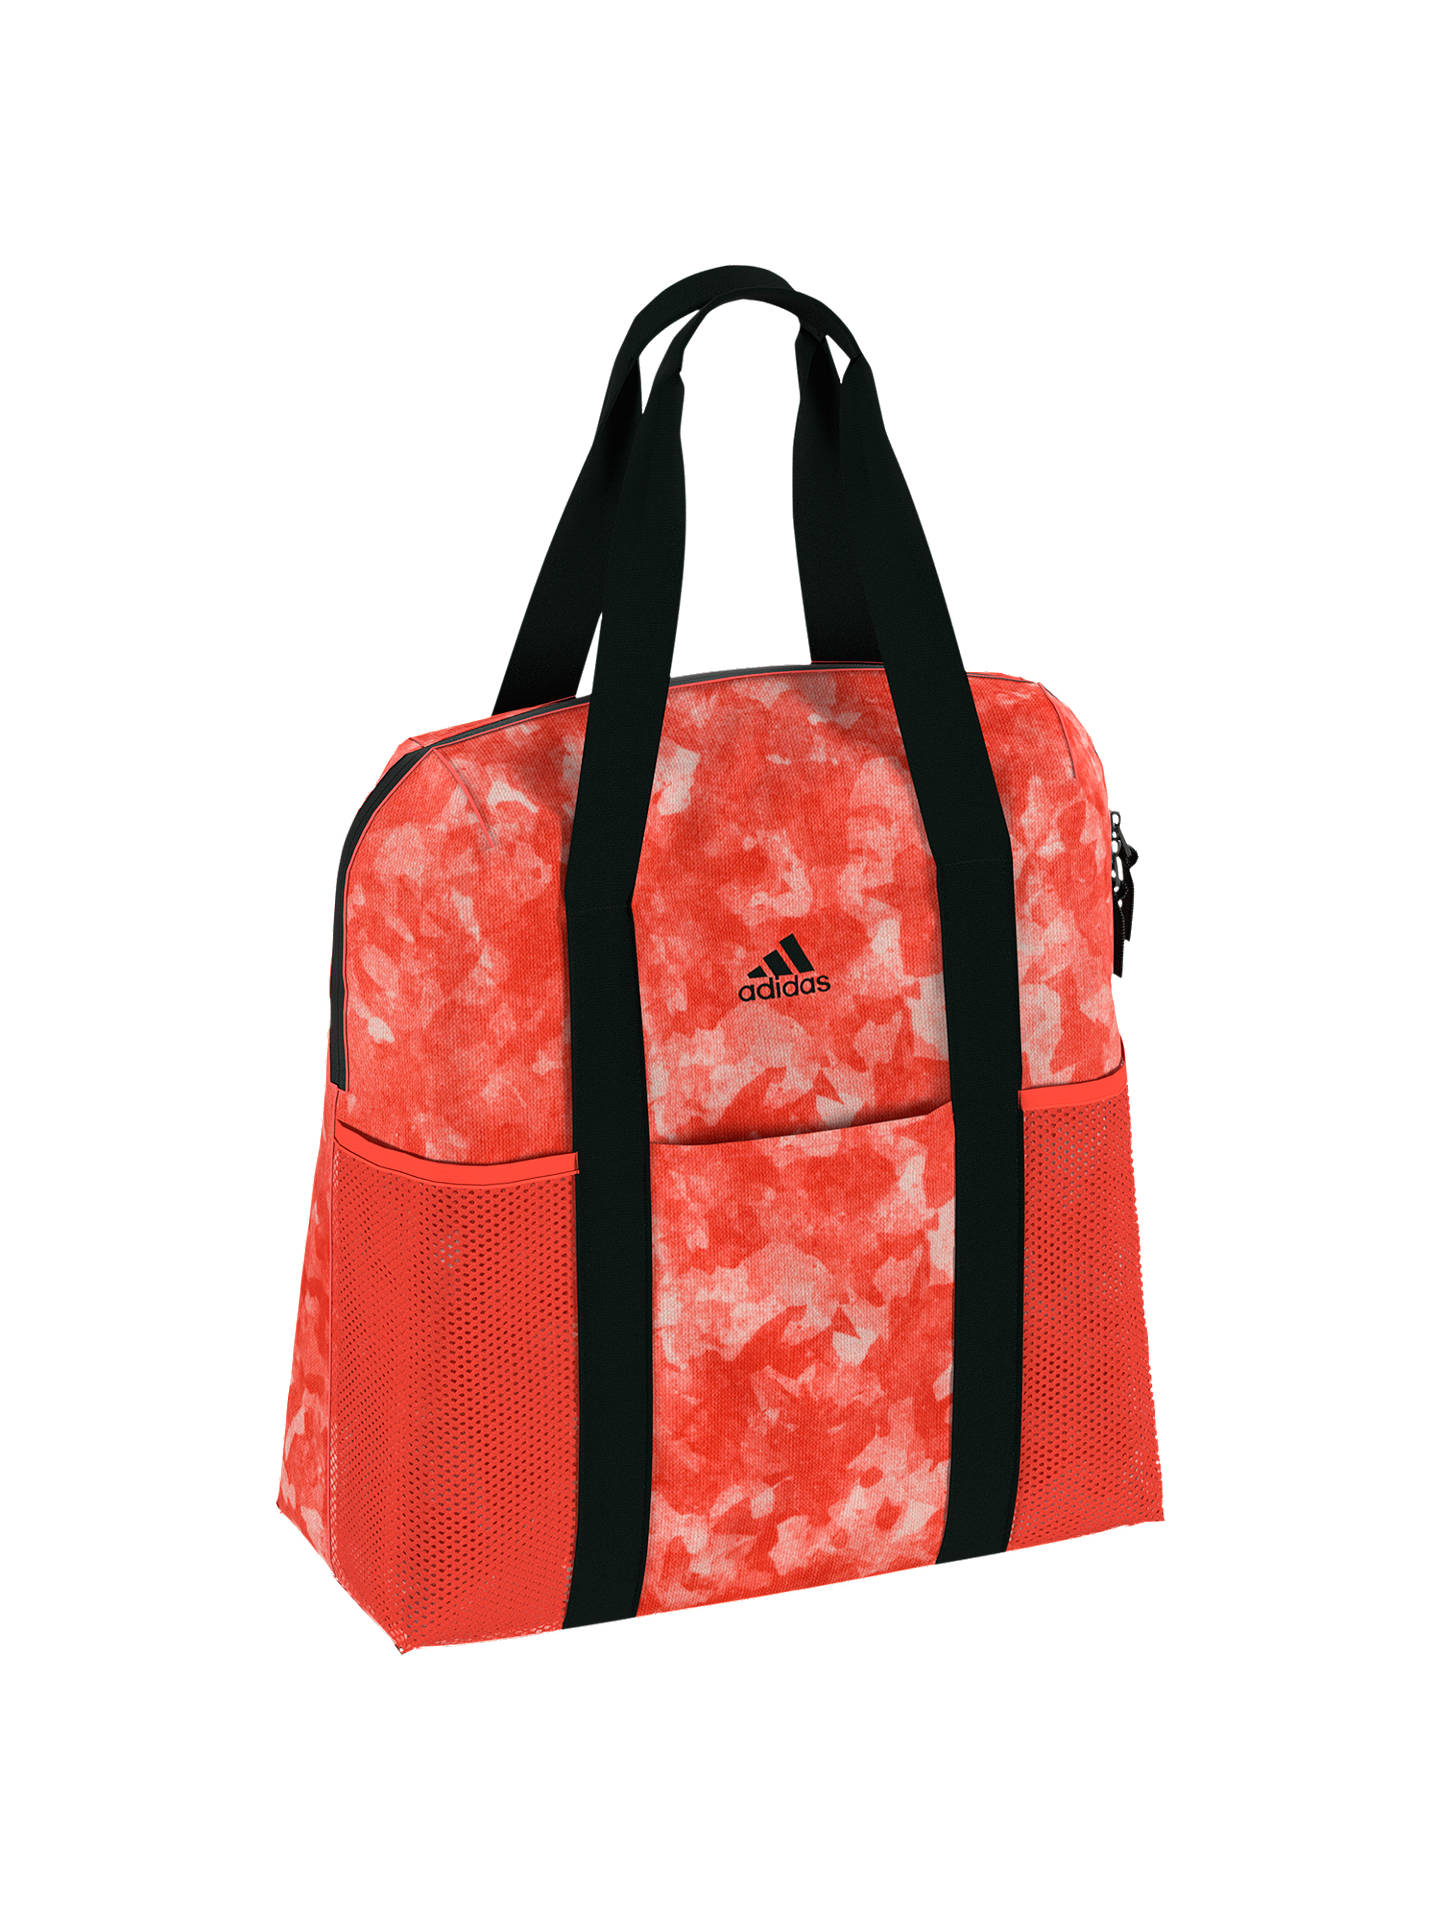 acbc34d02 Buy adidas Training Tote Bag, Scarlet Online at johnlewis.com ...